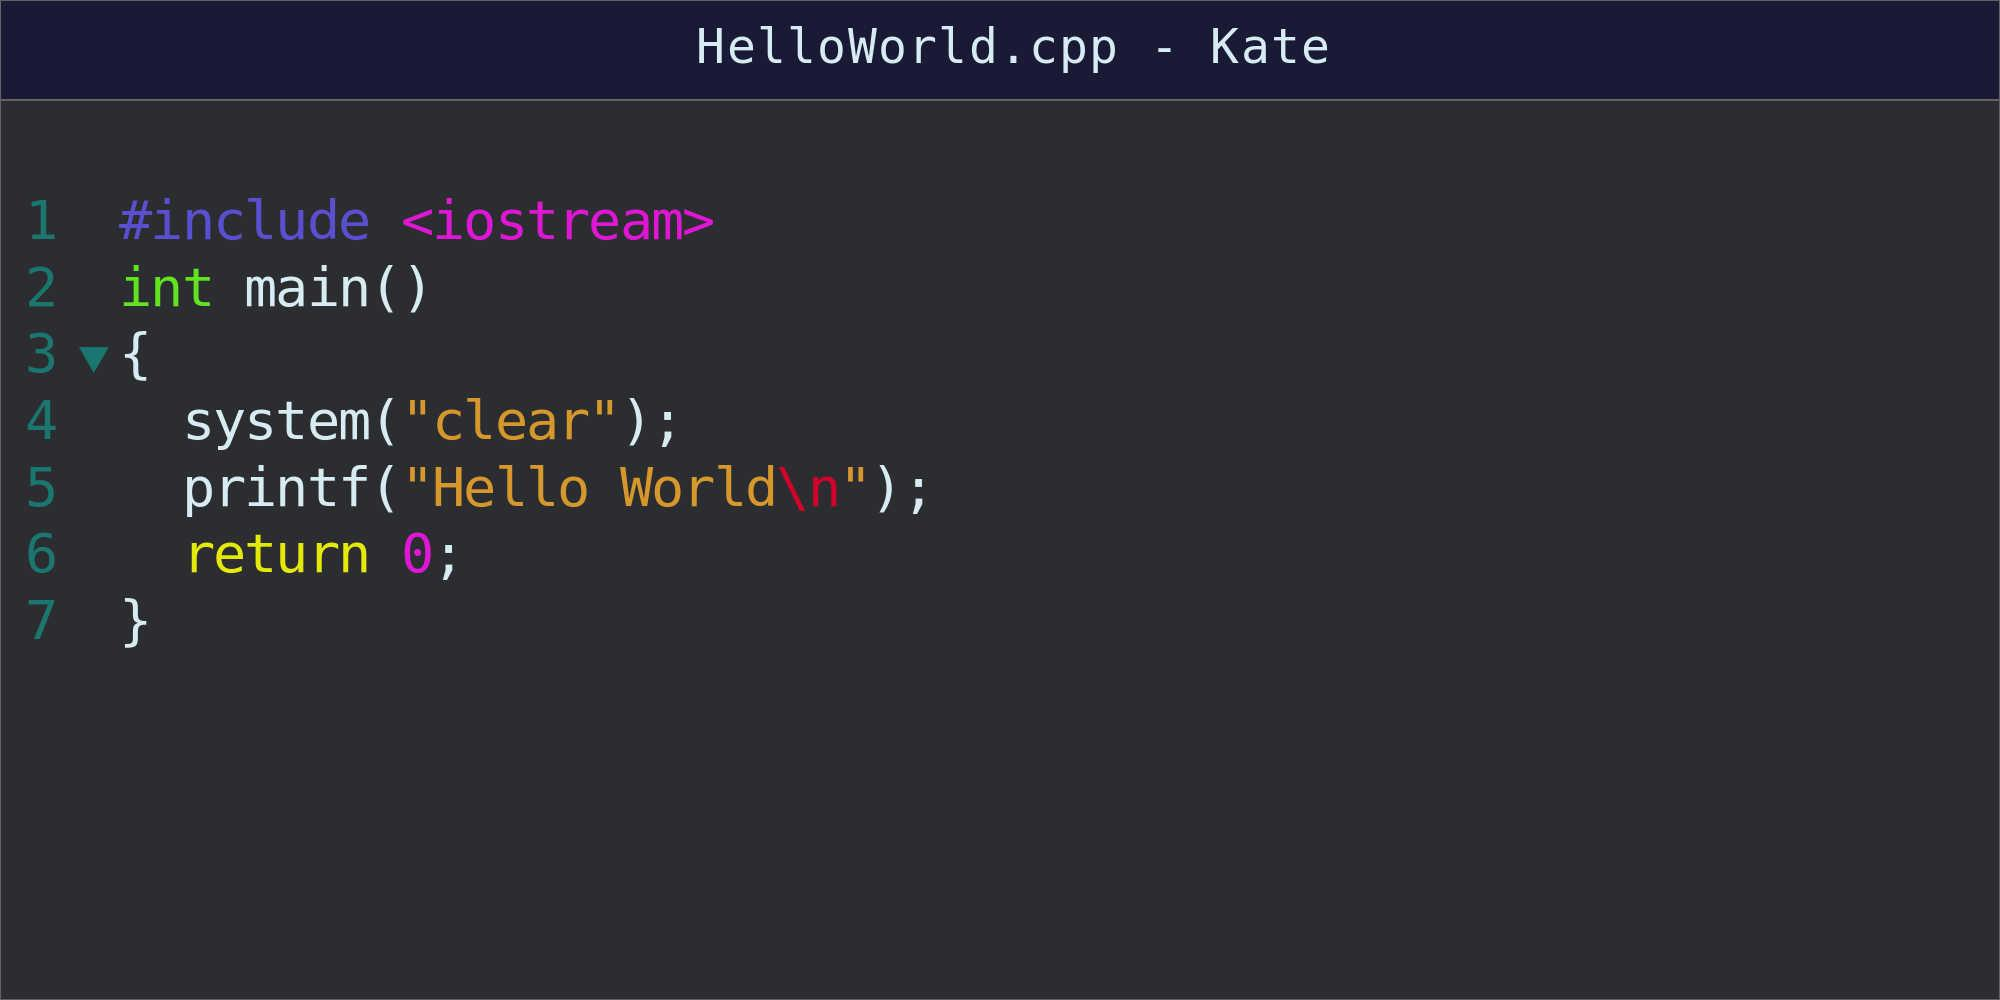 Re-written code for hello World program shown in text file